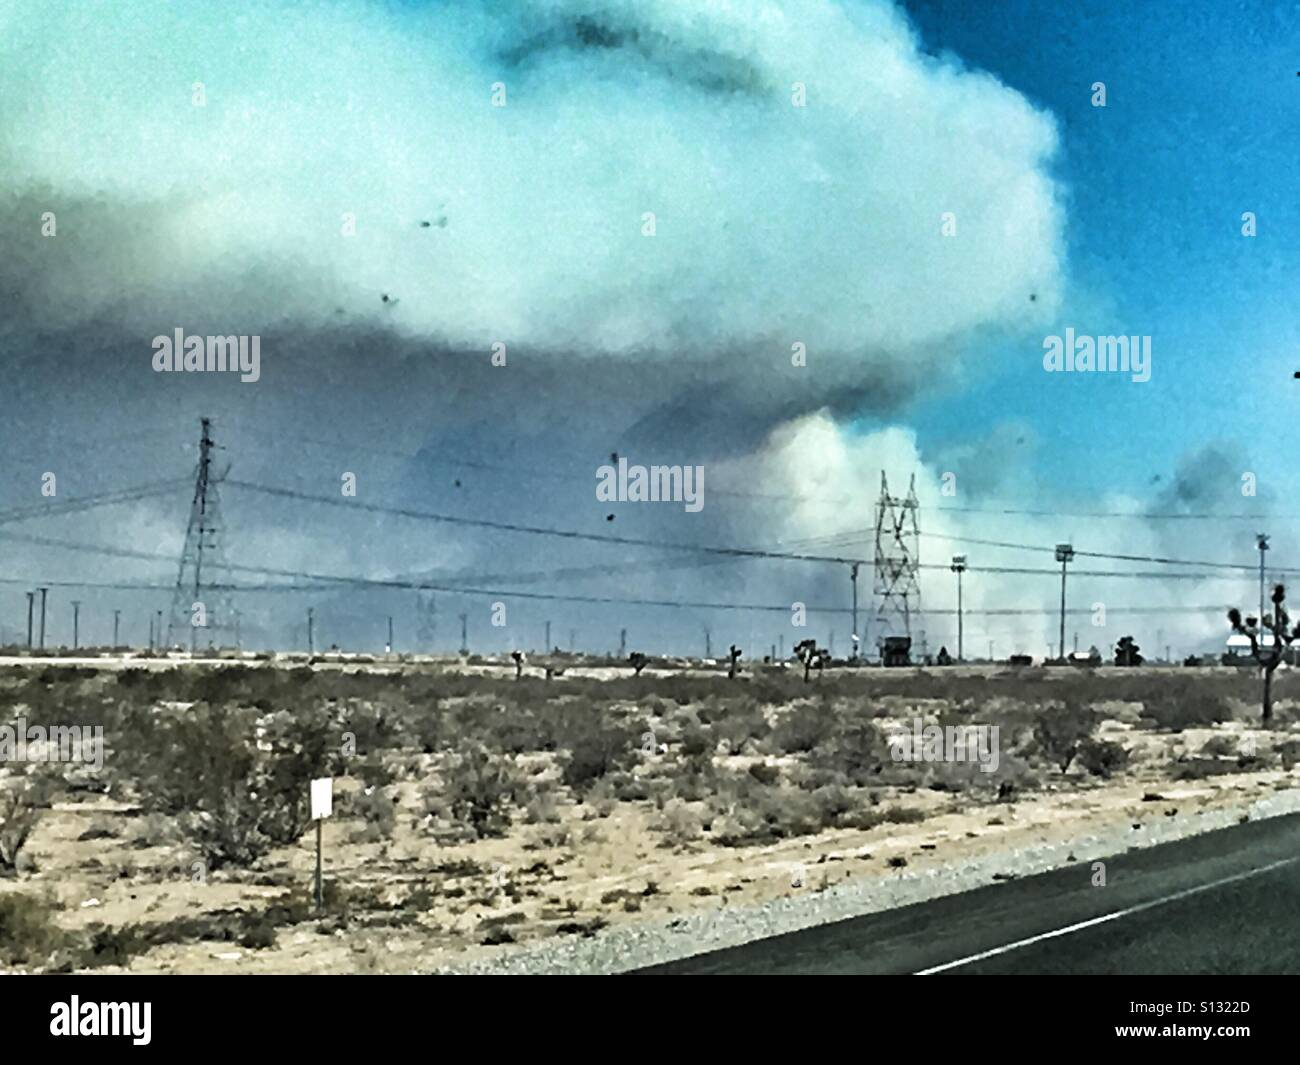 Smoke from fire blowing across the sky upon a desolate road - Stock Image